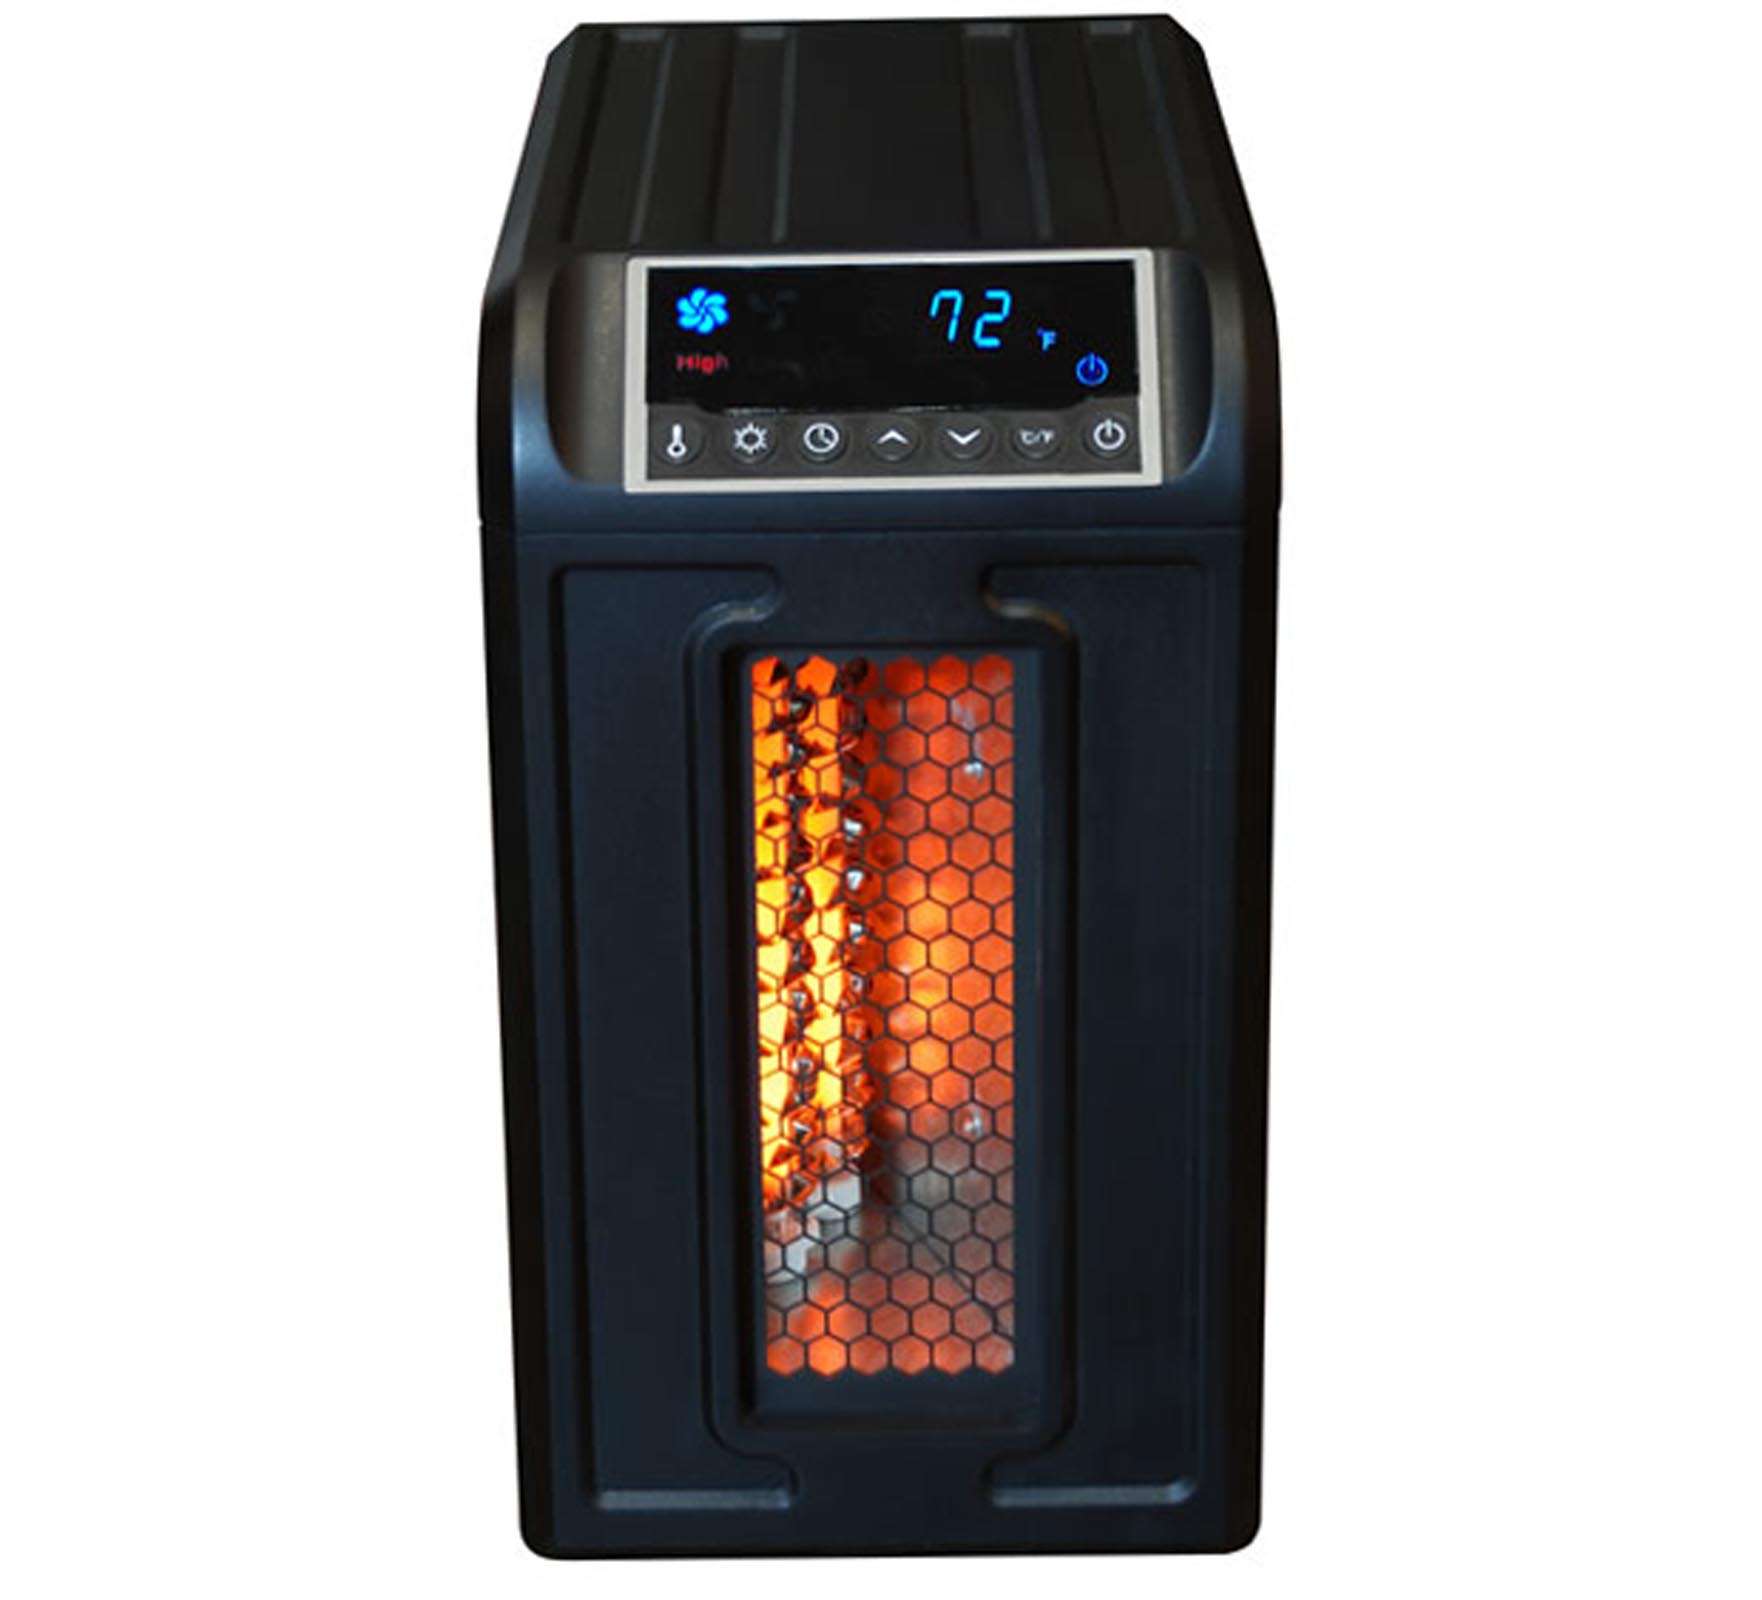 LS-3ECO�LifeSmart Low-Profile Infrared Portable Heater (Black) | LS-3ECO